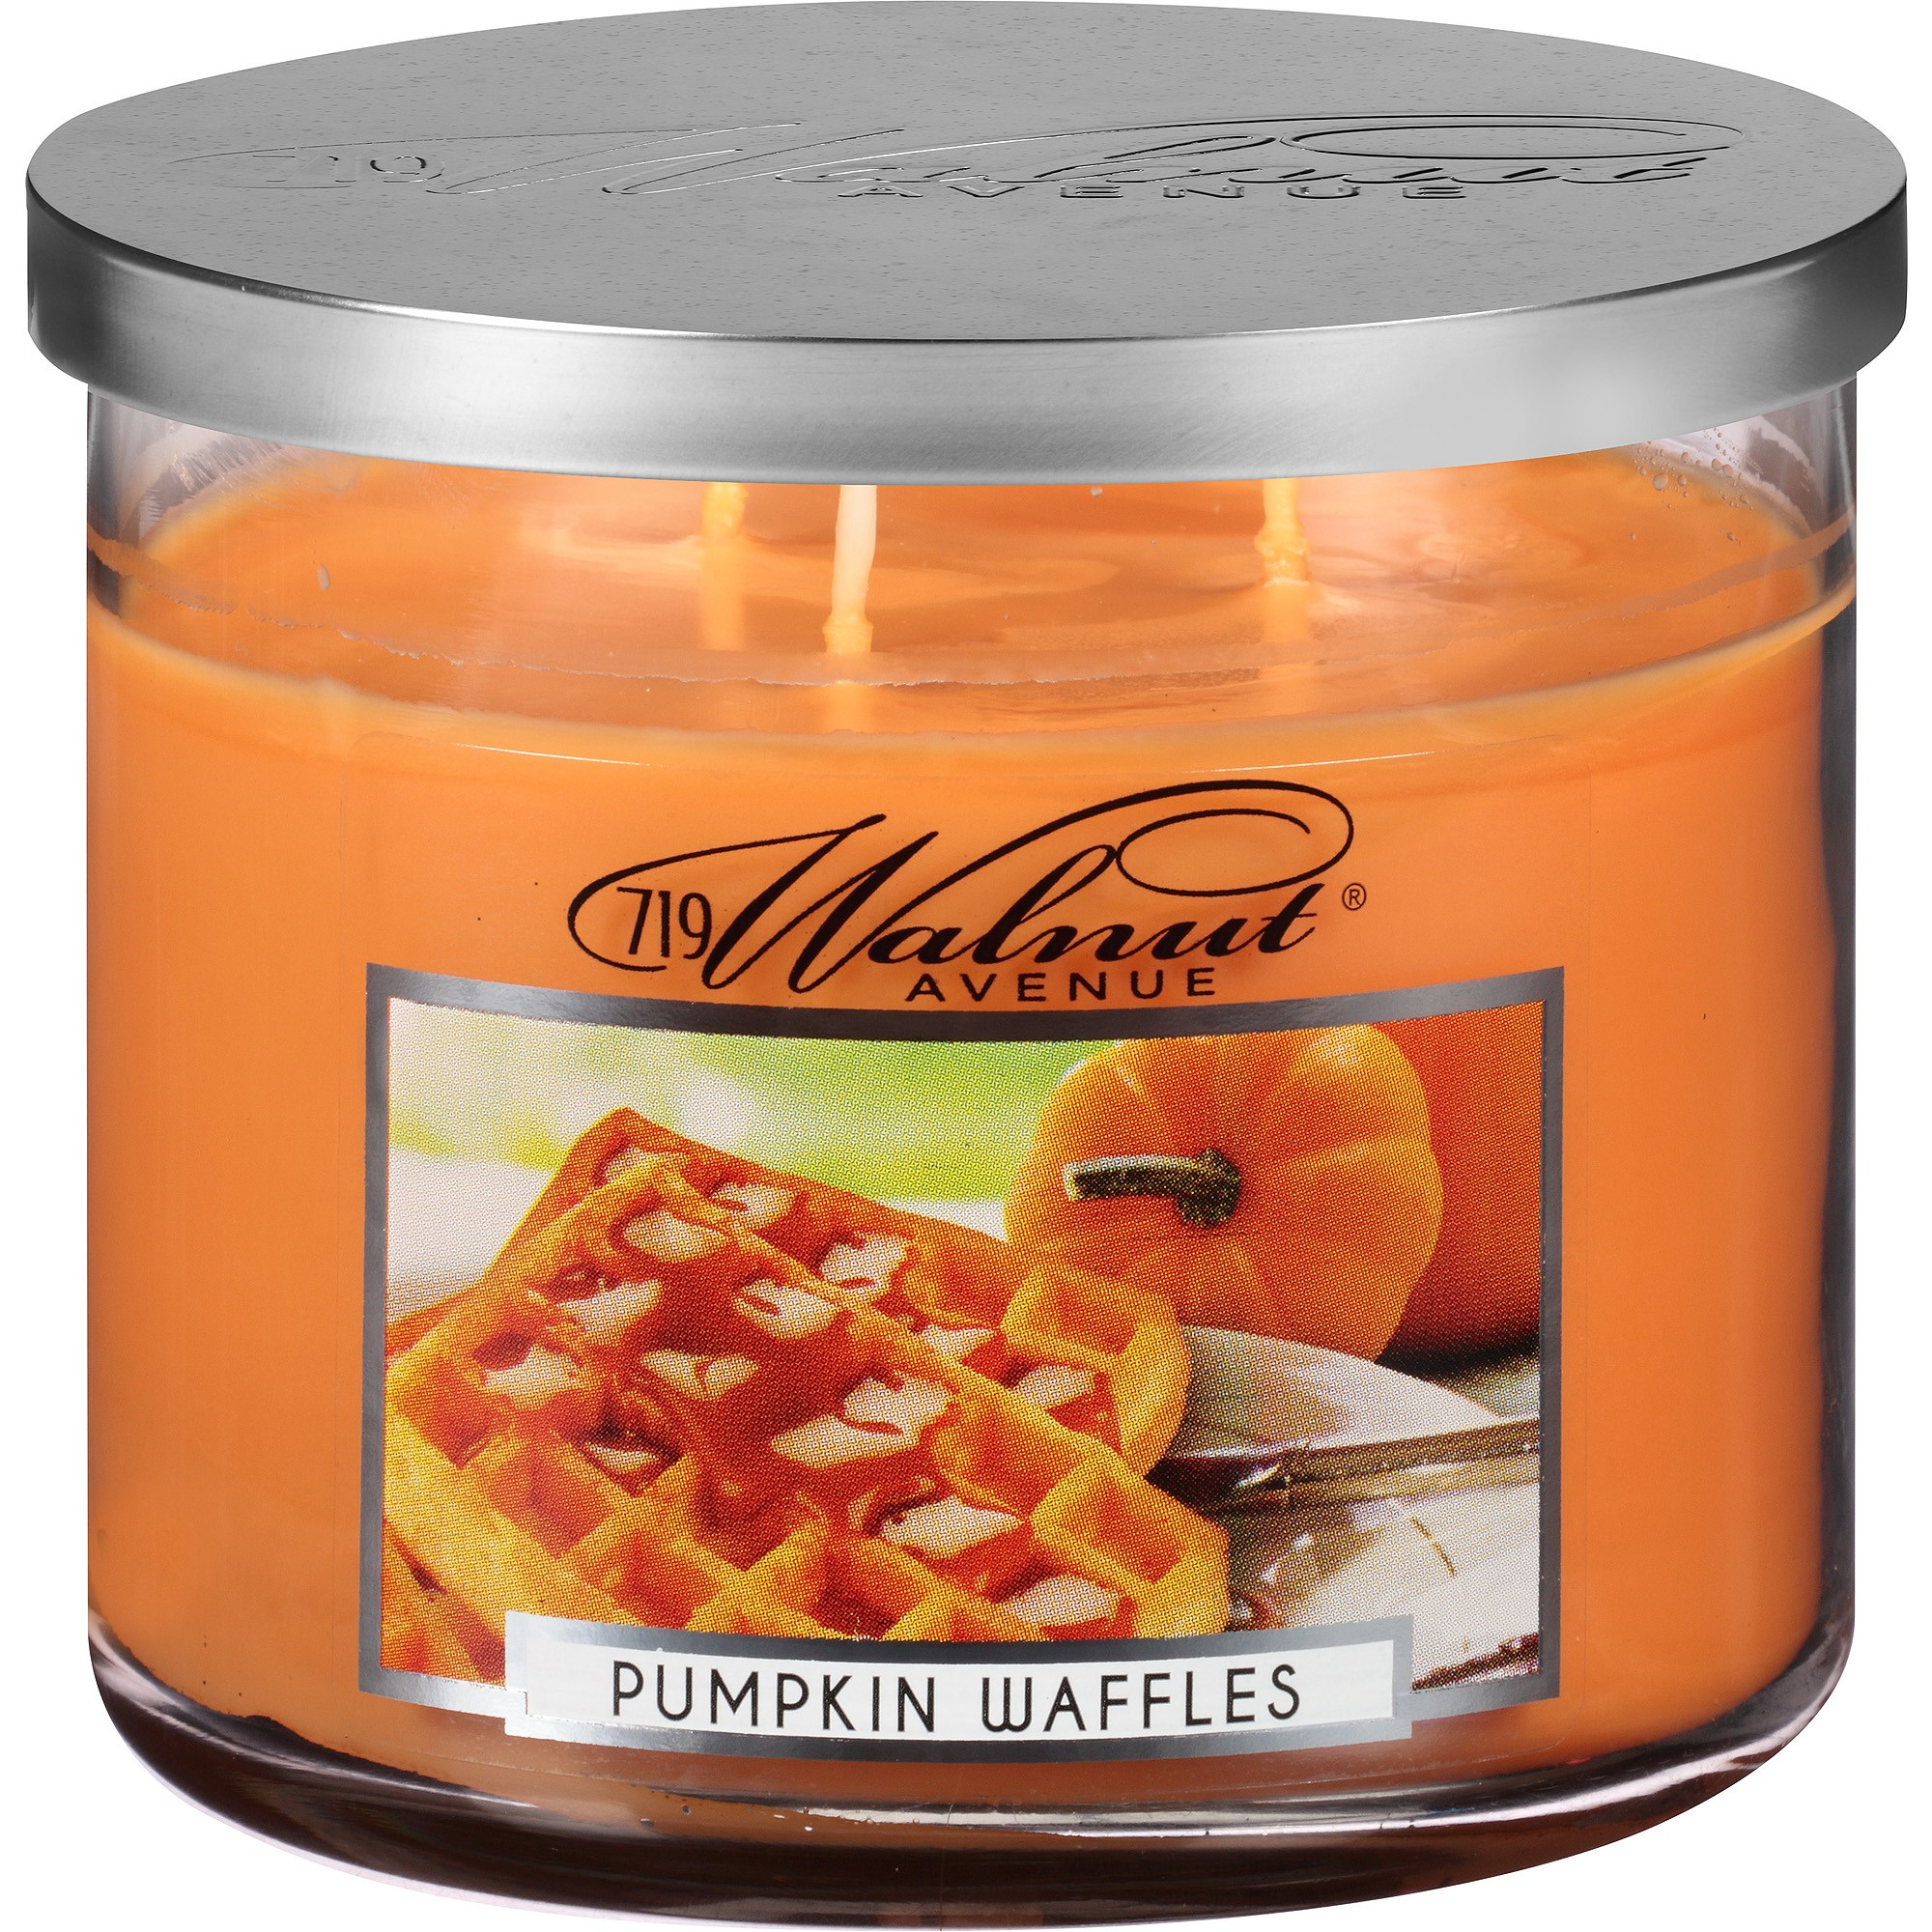 Click here to buy 719 Walnut Avenue Pumpkin Waffles Scented Candle, 14 Oz by 719 Walnut Avenue.